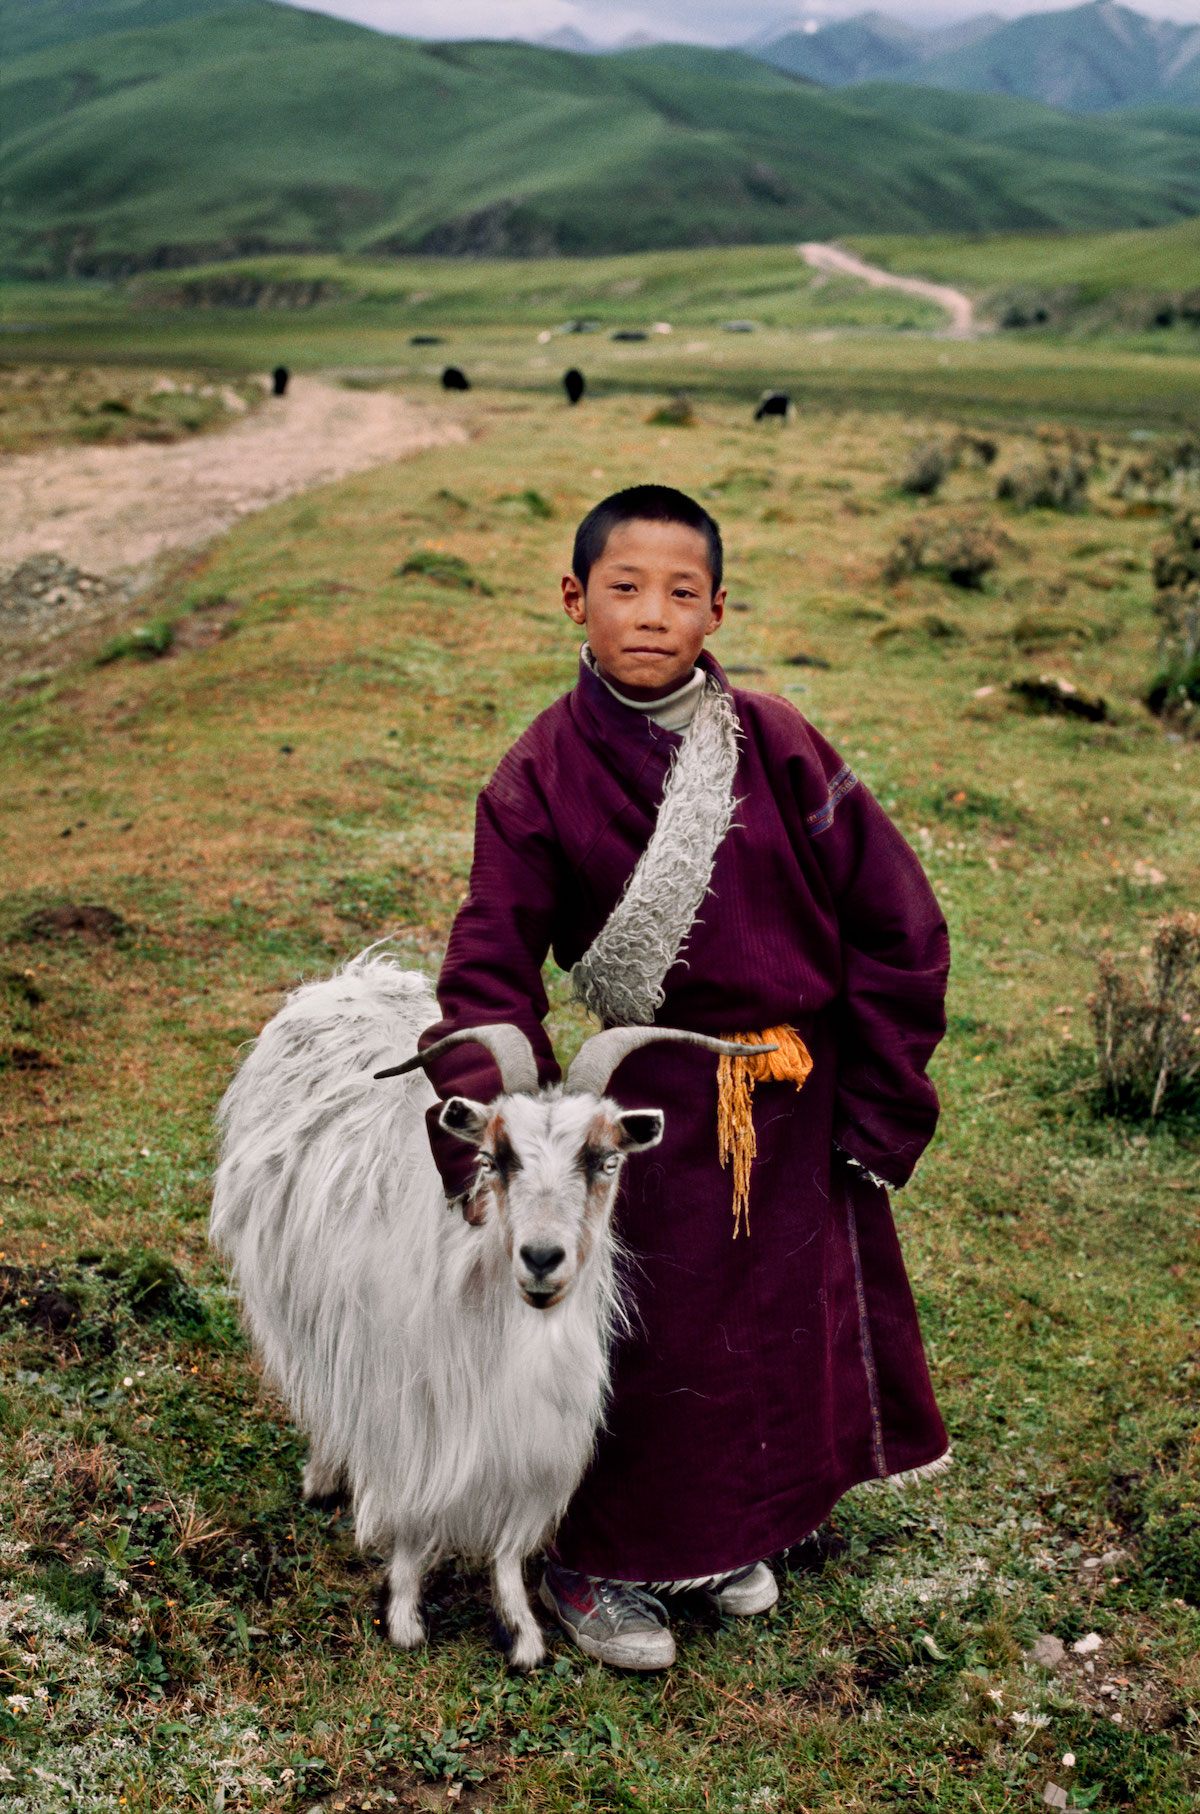 Young Tibetan Nomad with his Goat by Steve McCurry